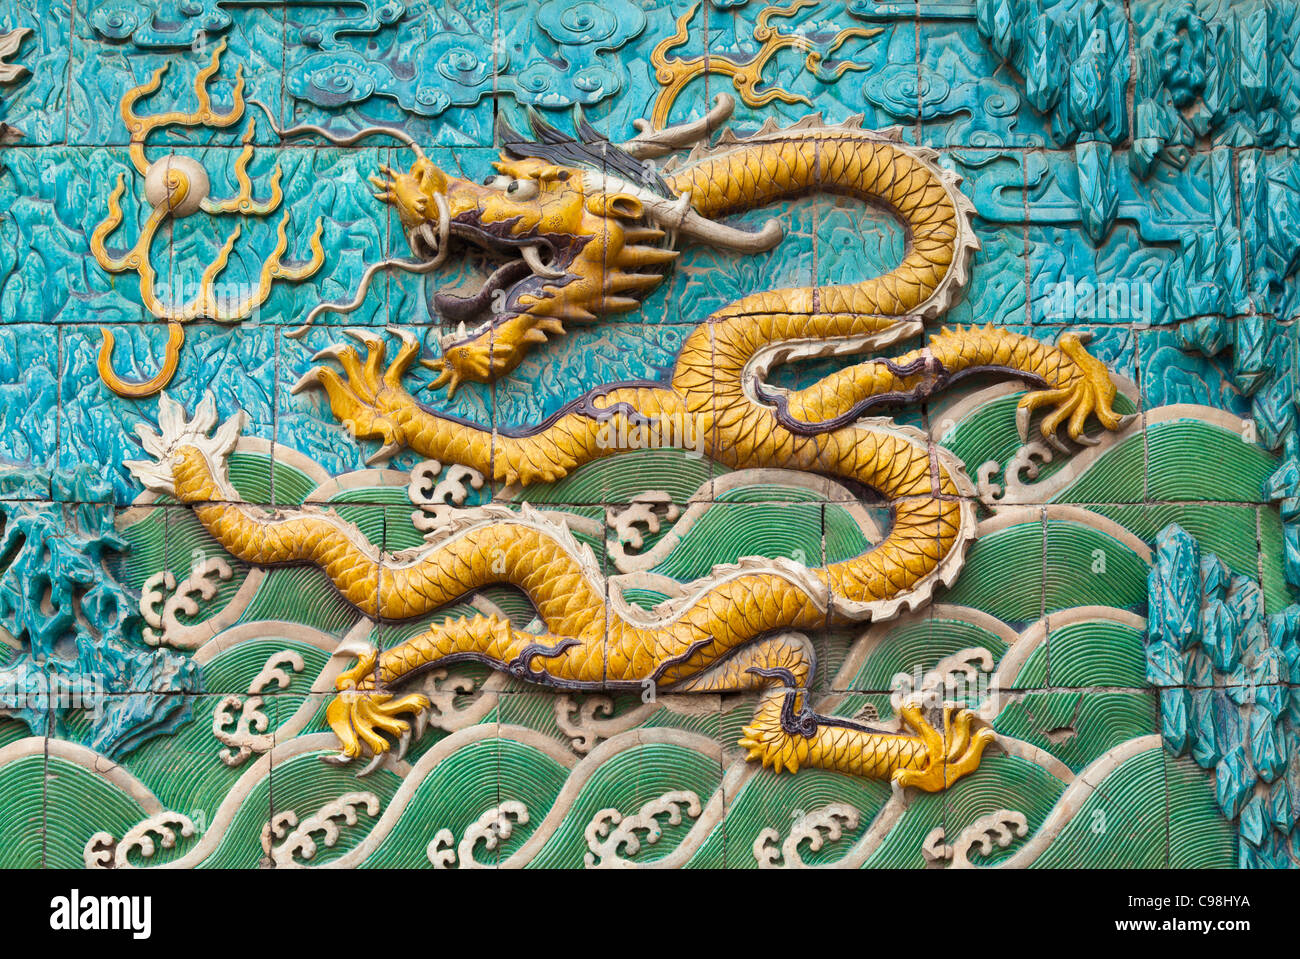 Detail of the Nine Dragons Screen, Palace of Tranquility and Longevity, Forbidden City, Beijing, Peoples Republic - Stock Image